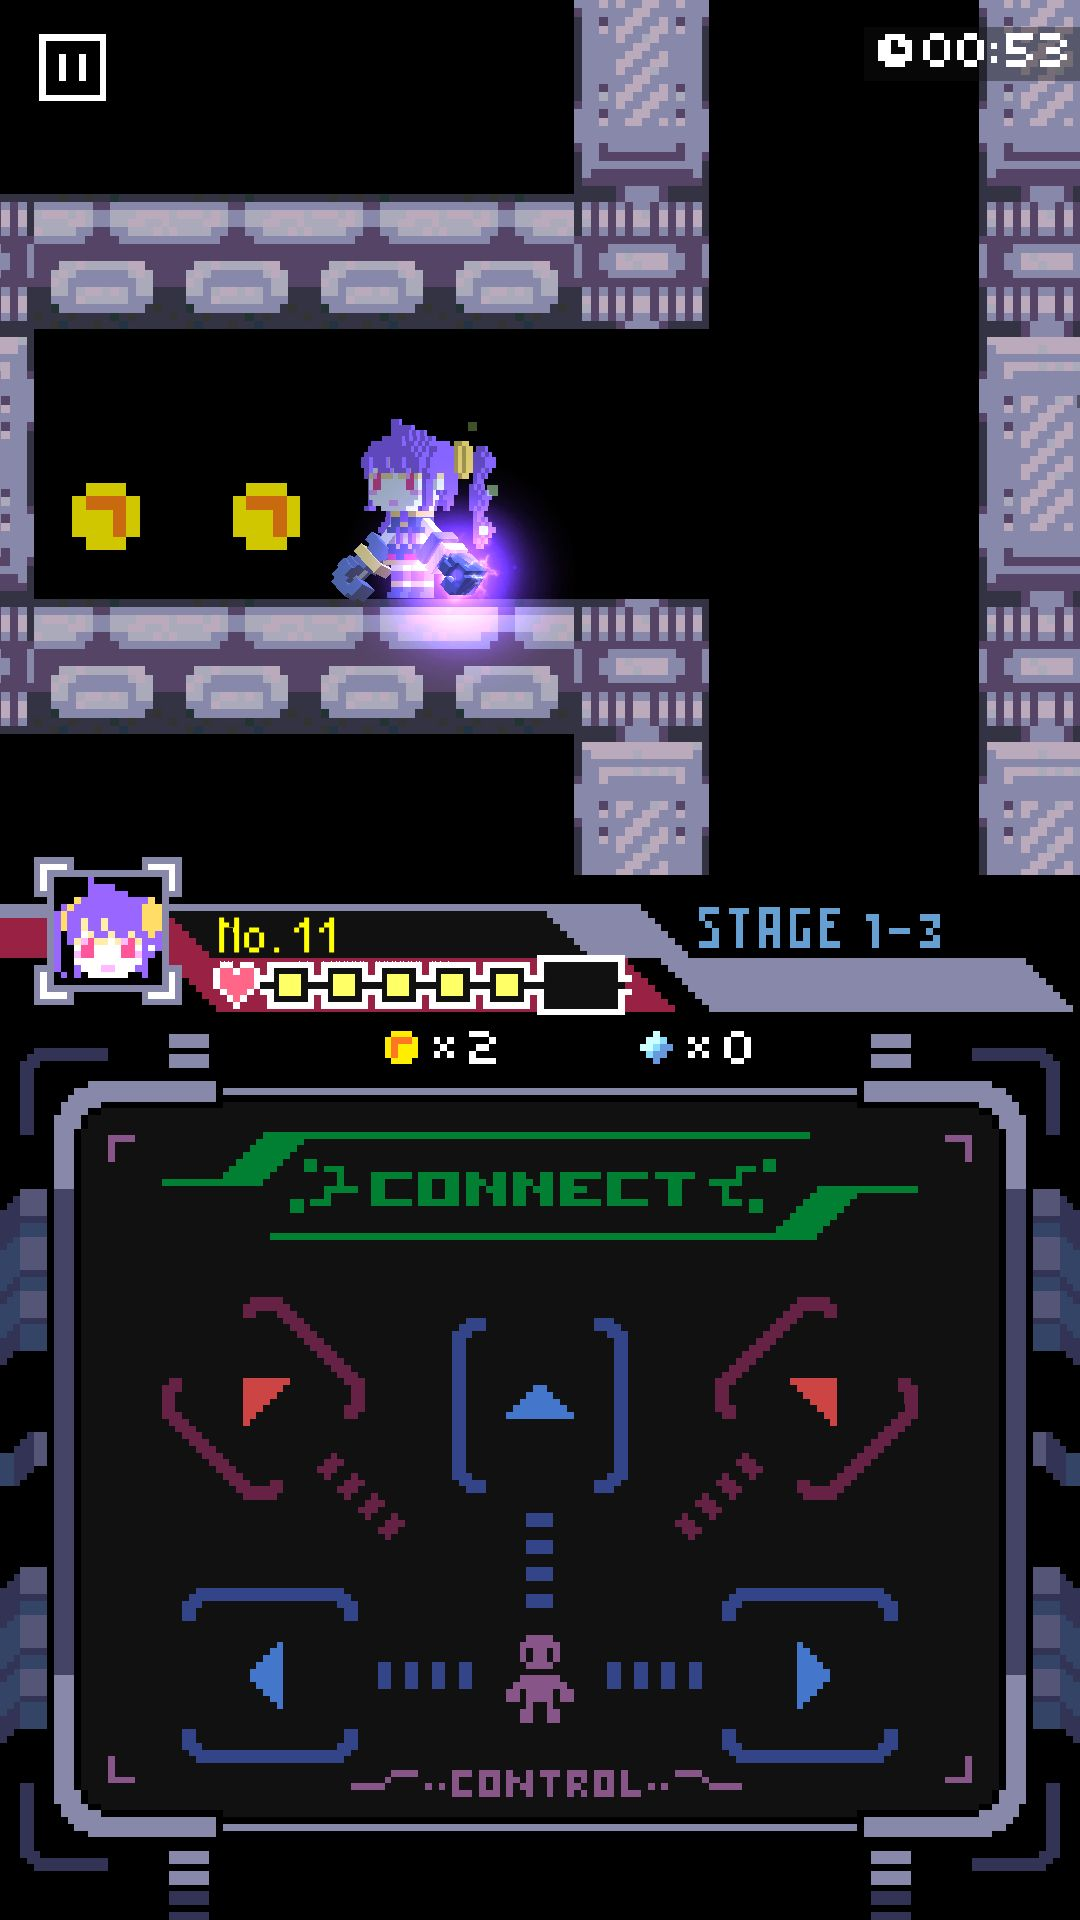 androidアプリ コネクト&ブレイク(Connect & Break)攻略スクリーンショット5